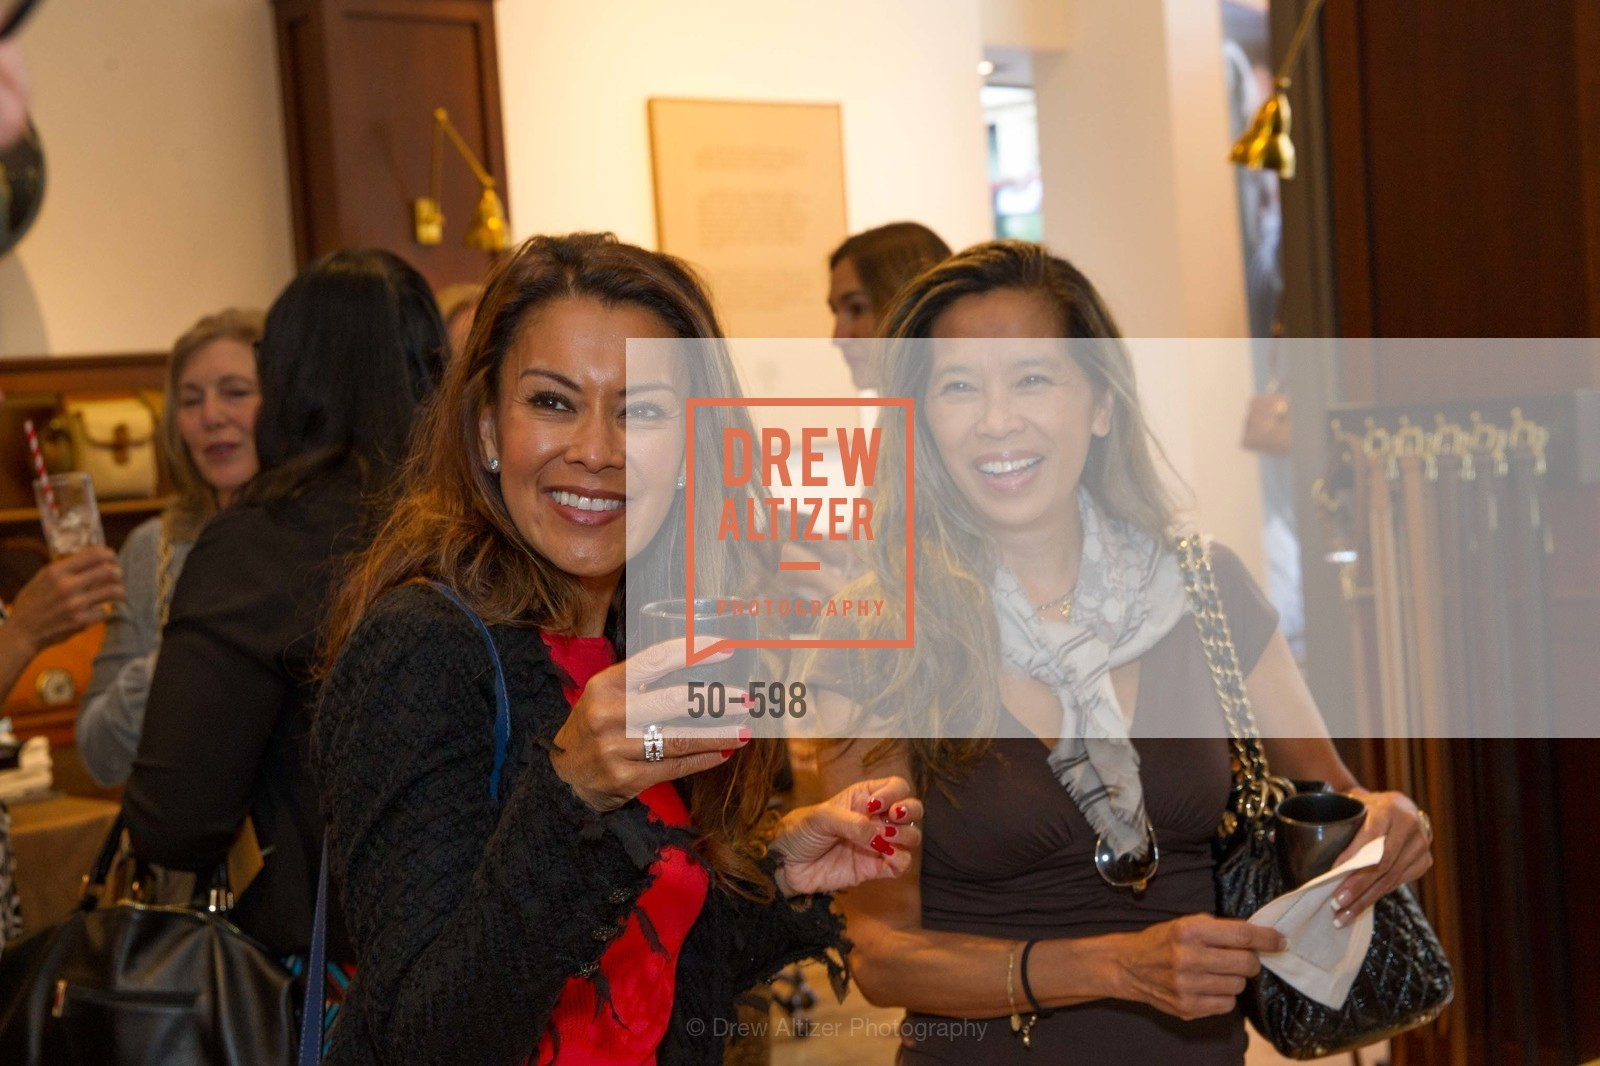 Veronica Villanueva, Jenny Wong, GHURKA FALL FASHION Press Preview Honoring the ZOO BOARD, US, October 7th, 2014,Drew Altizer, Drew Altizer Photography, full-service agency, private events, San Francisco photographer, photographer california